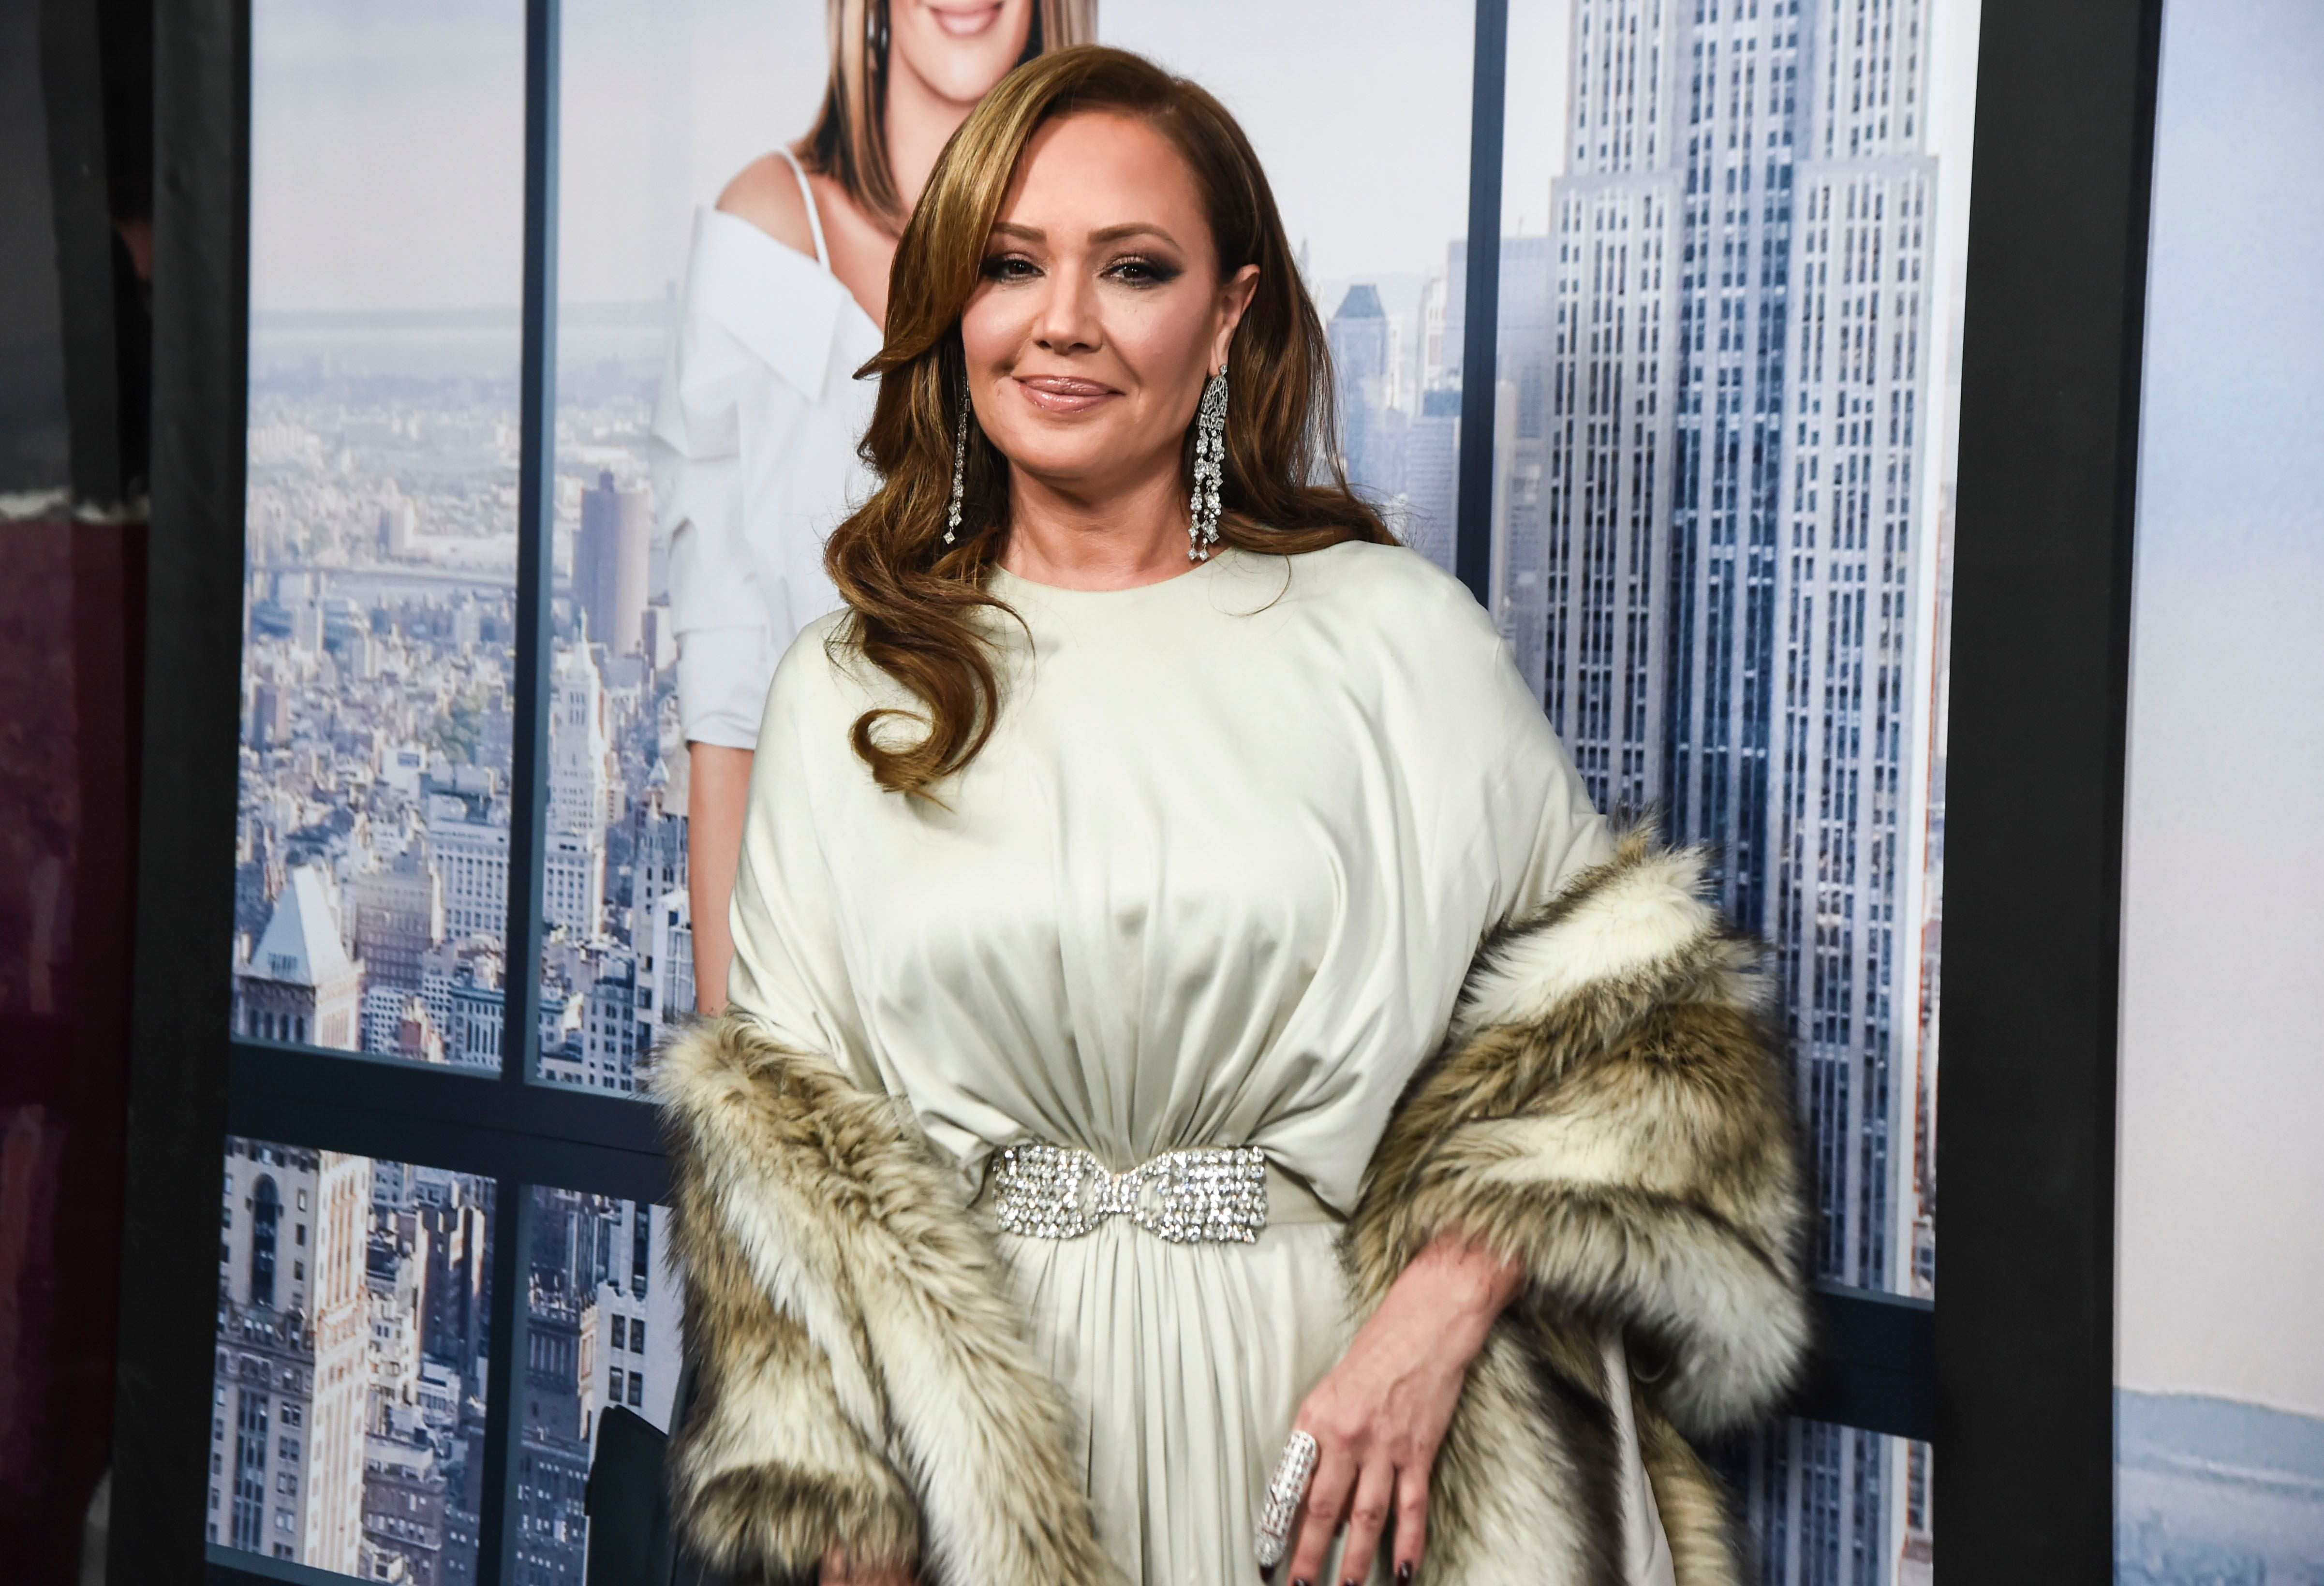 """Leah Remini at the """"Second Act"""" World Premiere on December 12, 2018 in New York City 